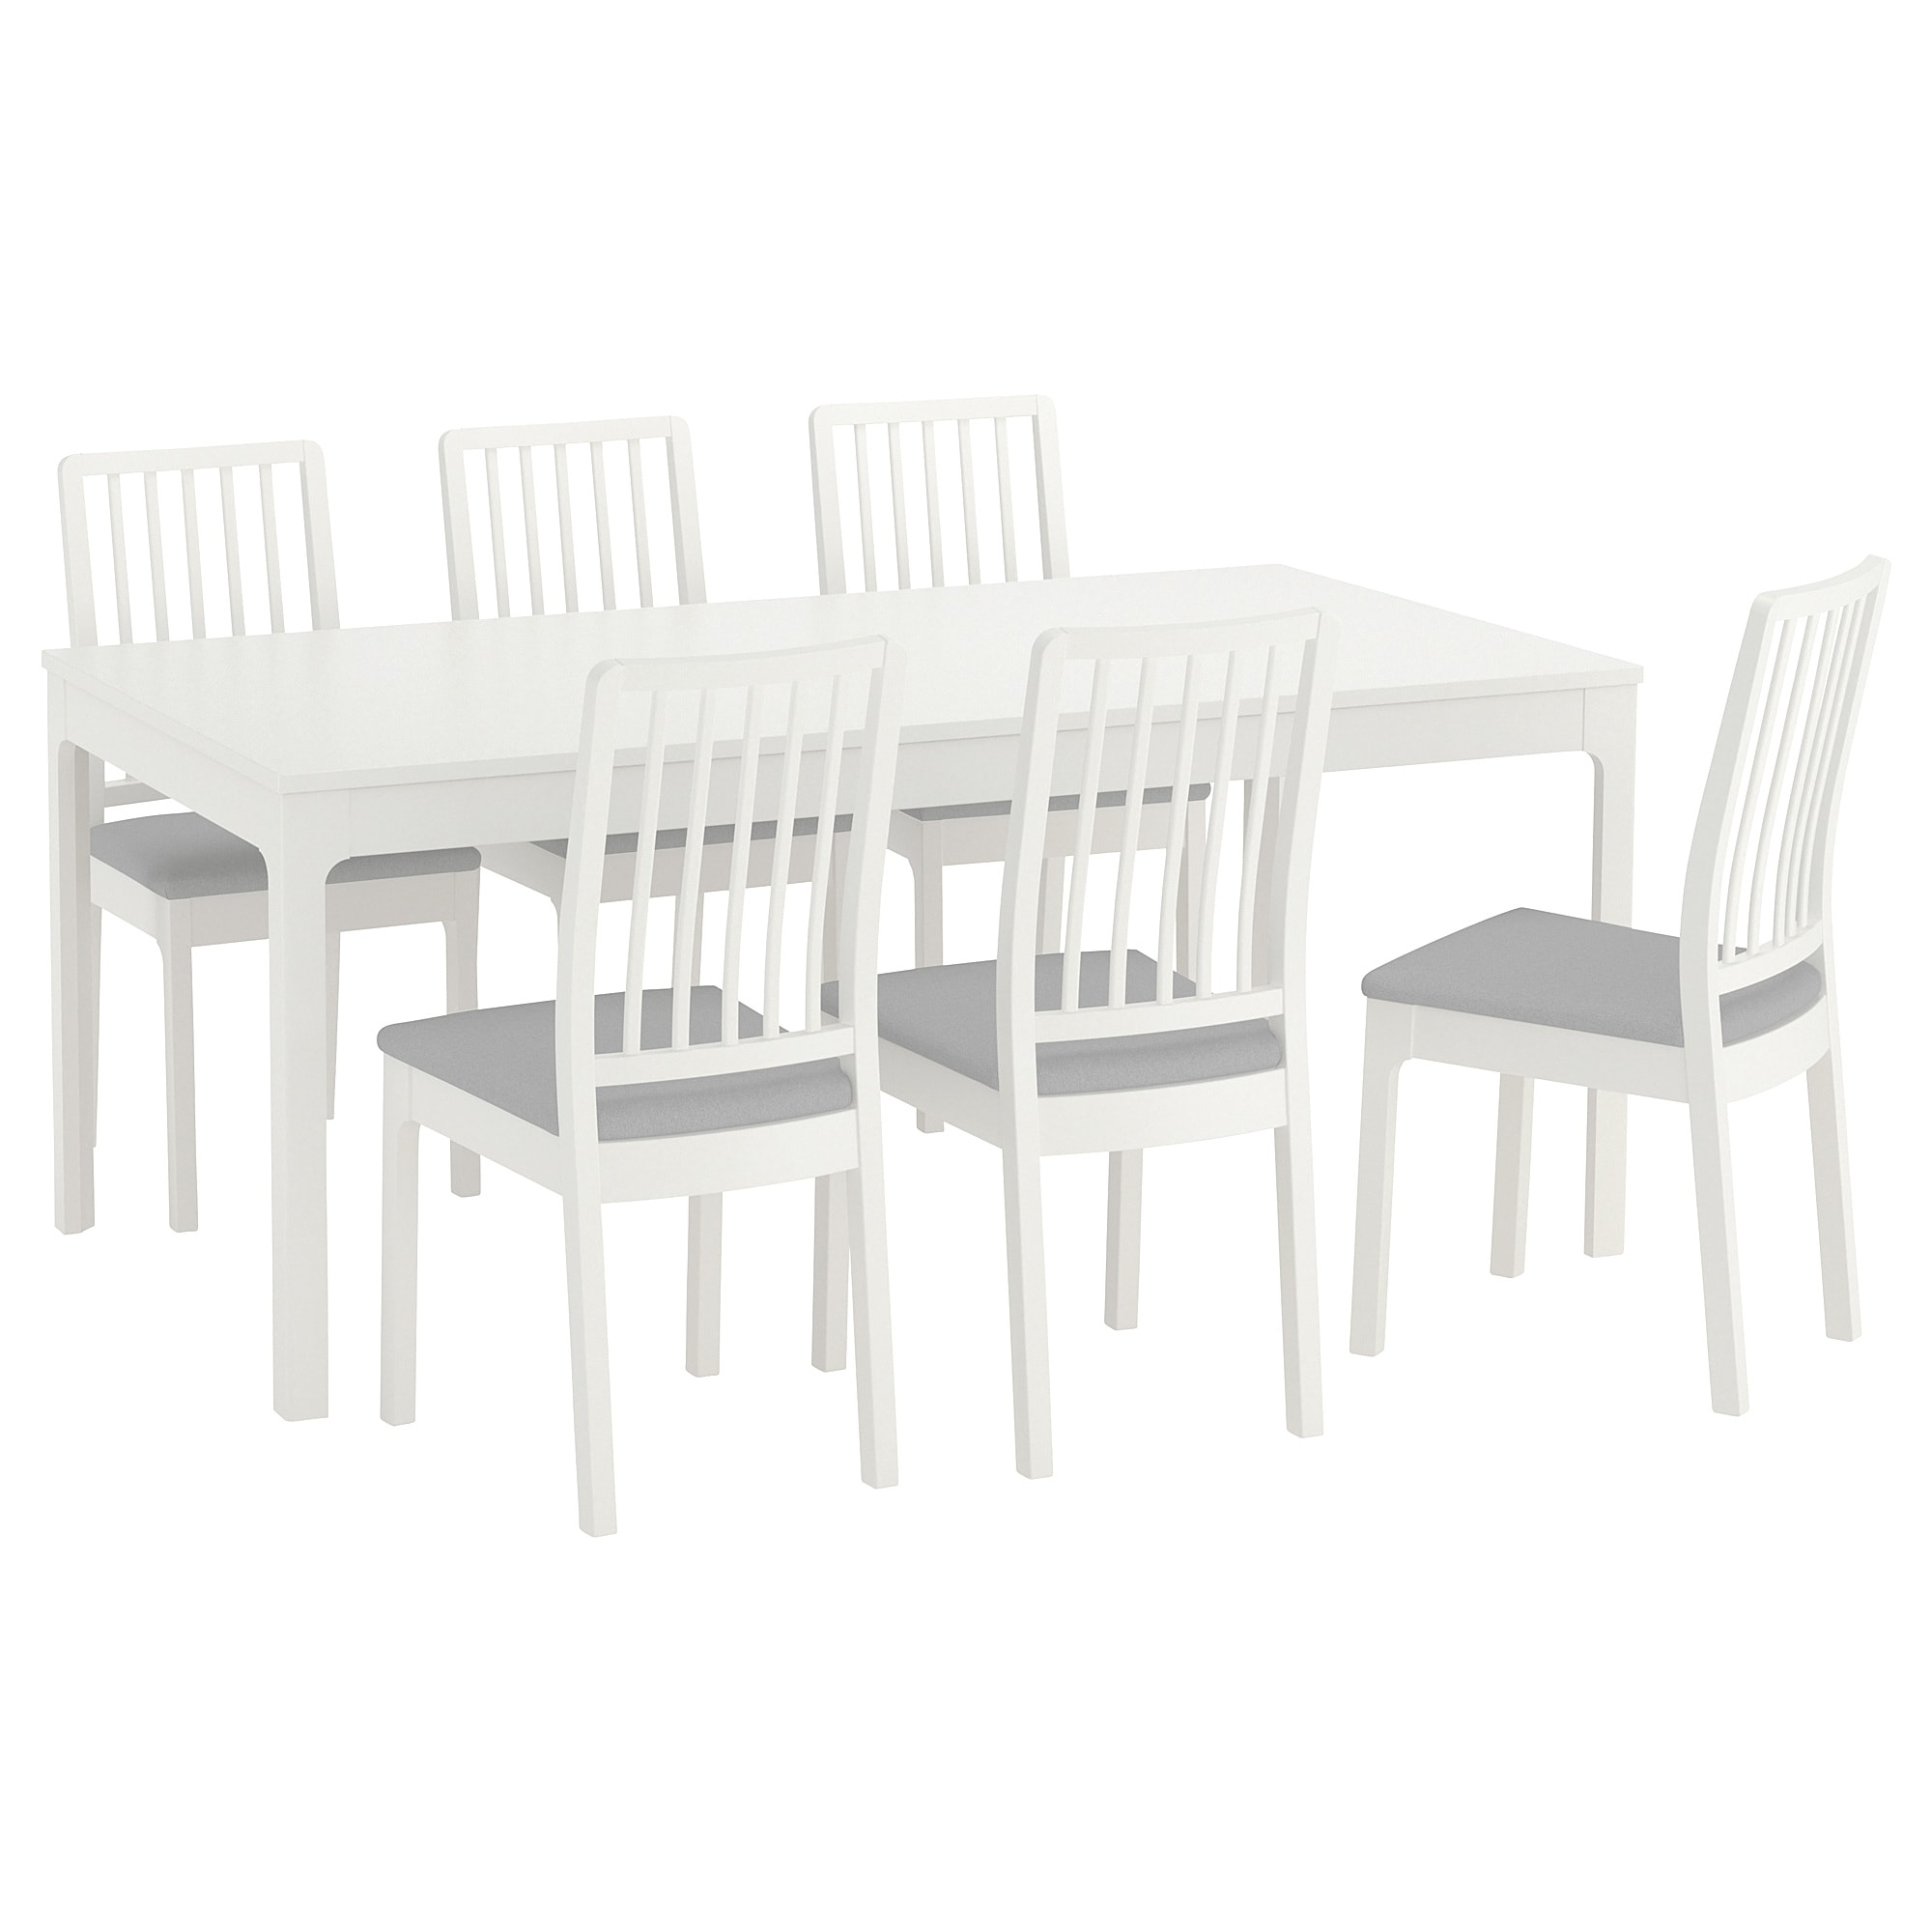 Ekedalen/ekedalen Table And 6 Chairs White/orrsta Light Grey 180/240 throughout Well known White Dining Tables With 6 Chairs